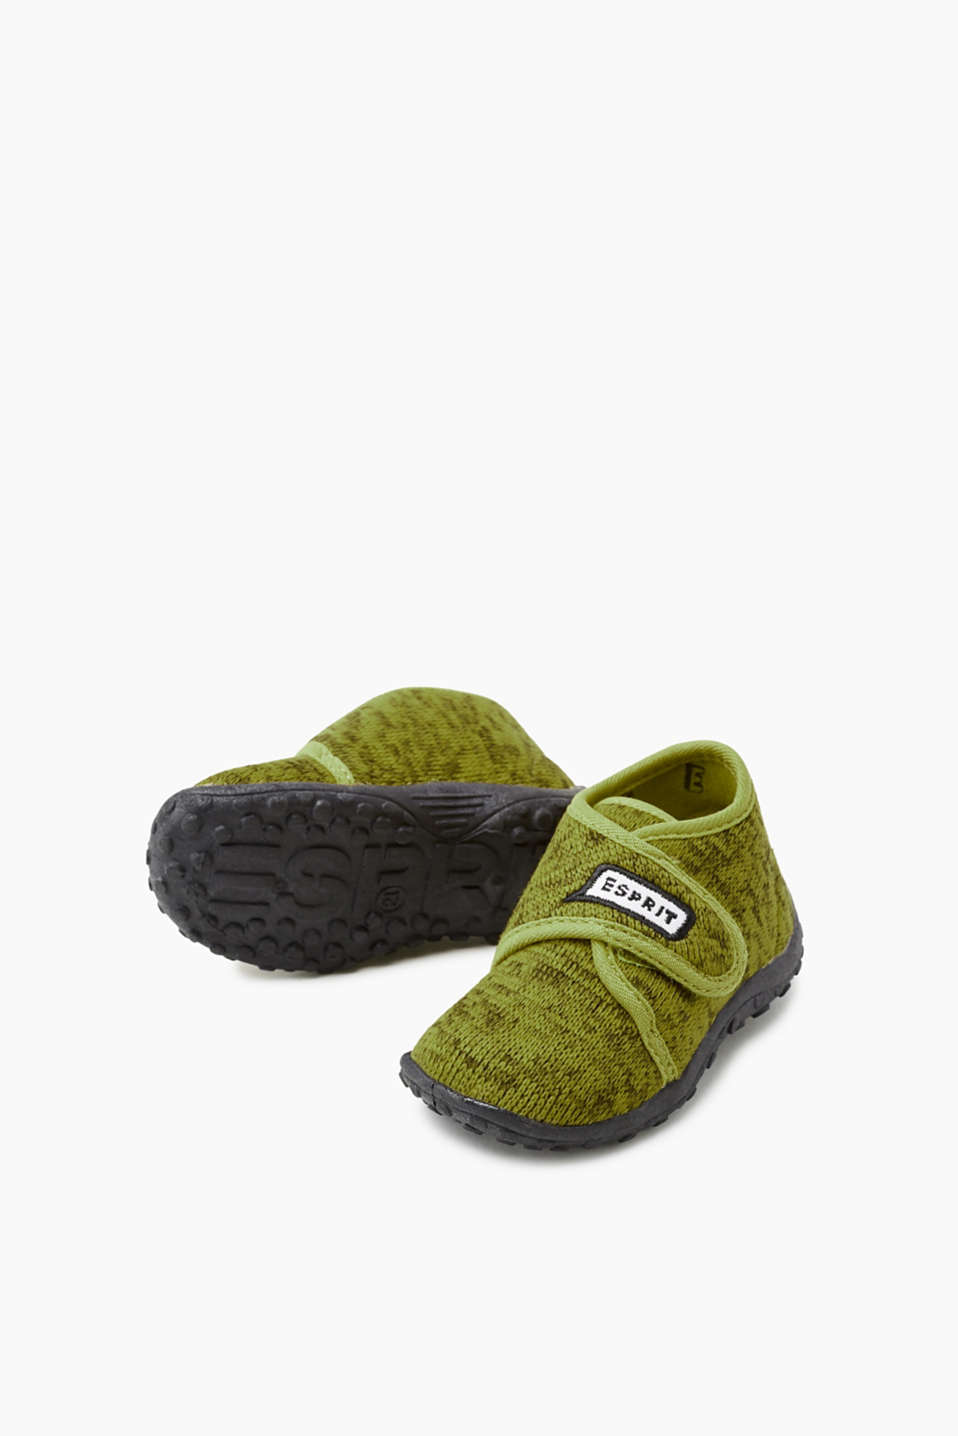 Slippers with Velcro fasteners